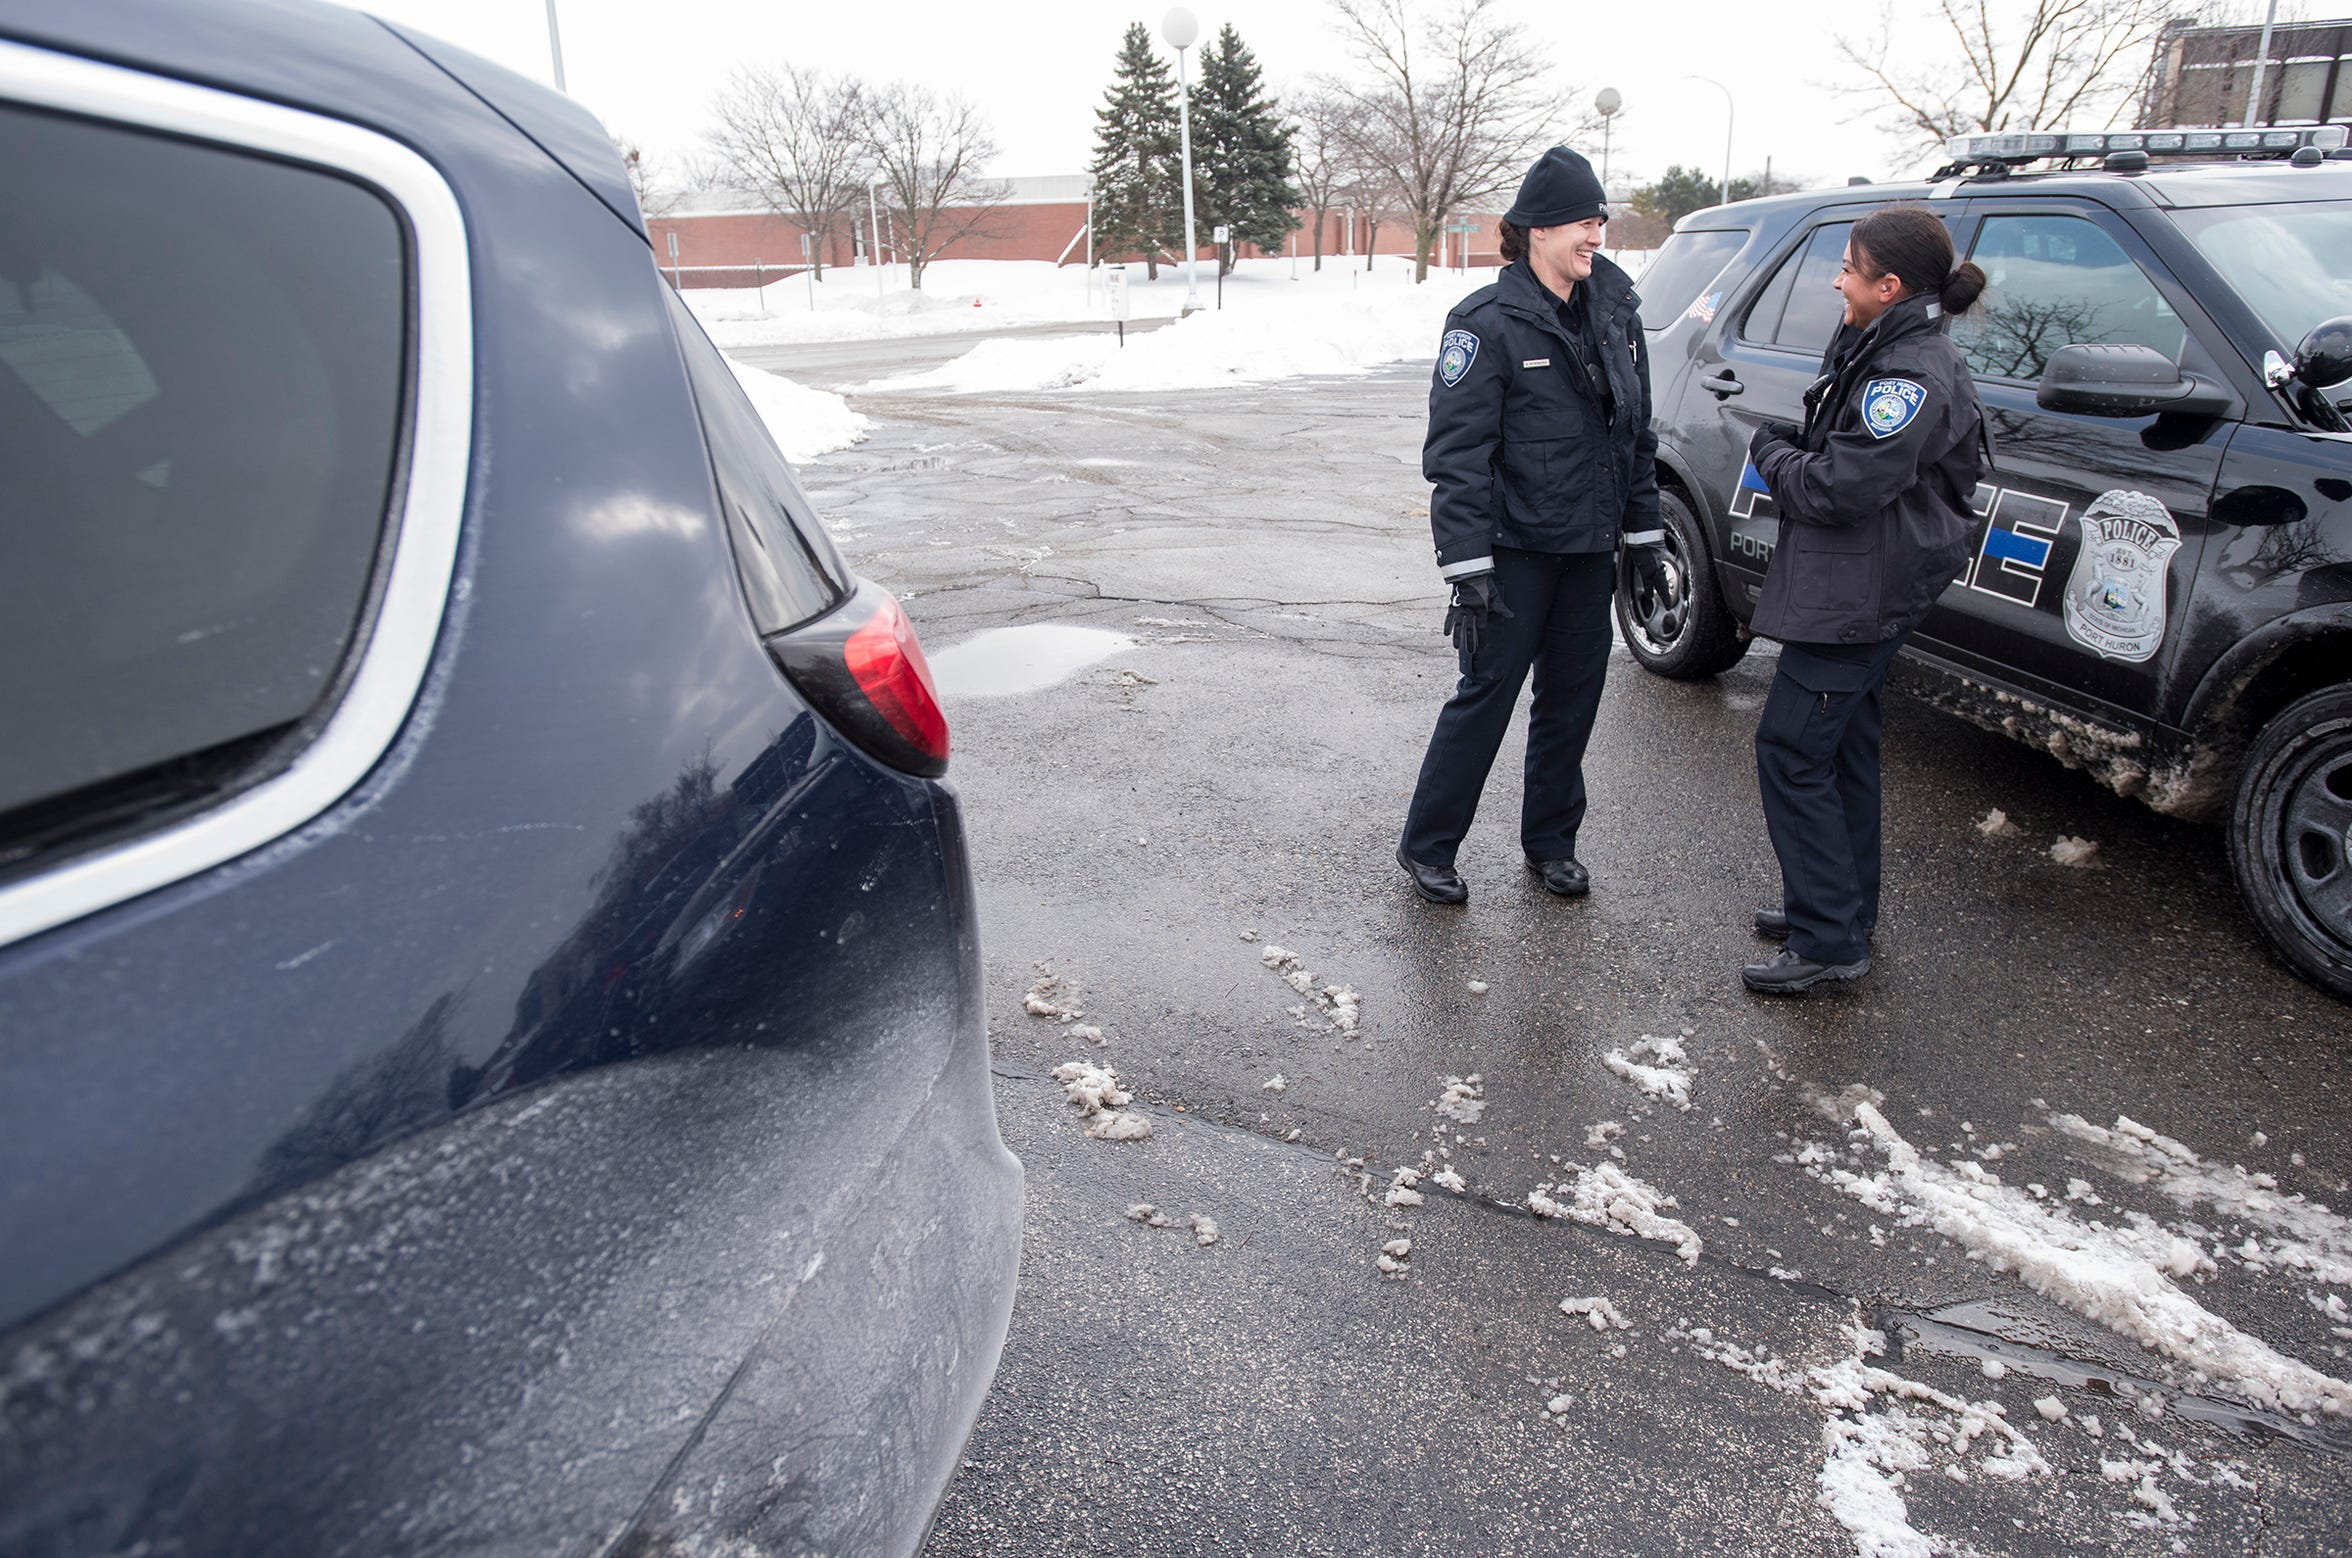 Port Huron Police Officers Adrianne Mynsberge, left, and Ashley Marcano talk while waiting to run a license plate on patrol Tuesday, Jan. 29, 2019, in Port Huron. Mysnberge has been with the department for 13 years, and Marcano just two months.